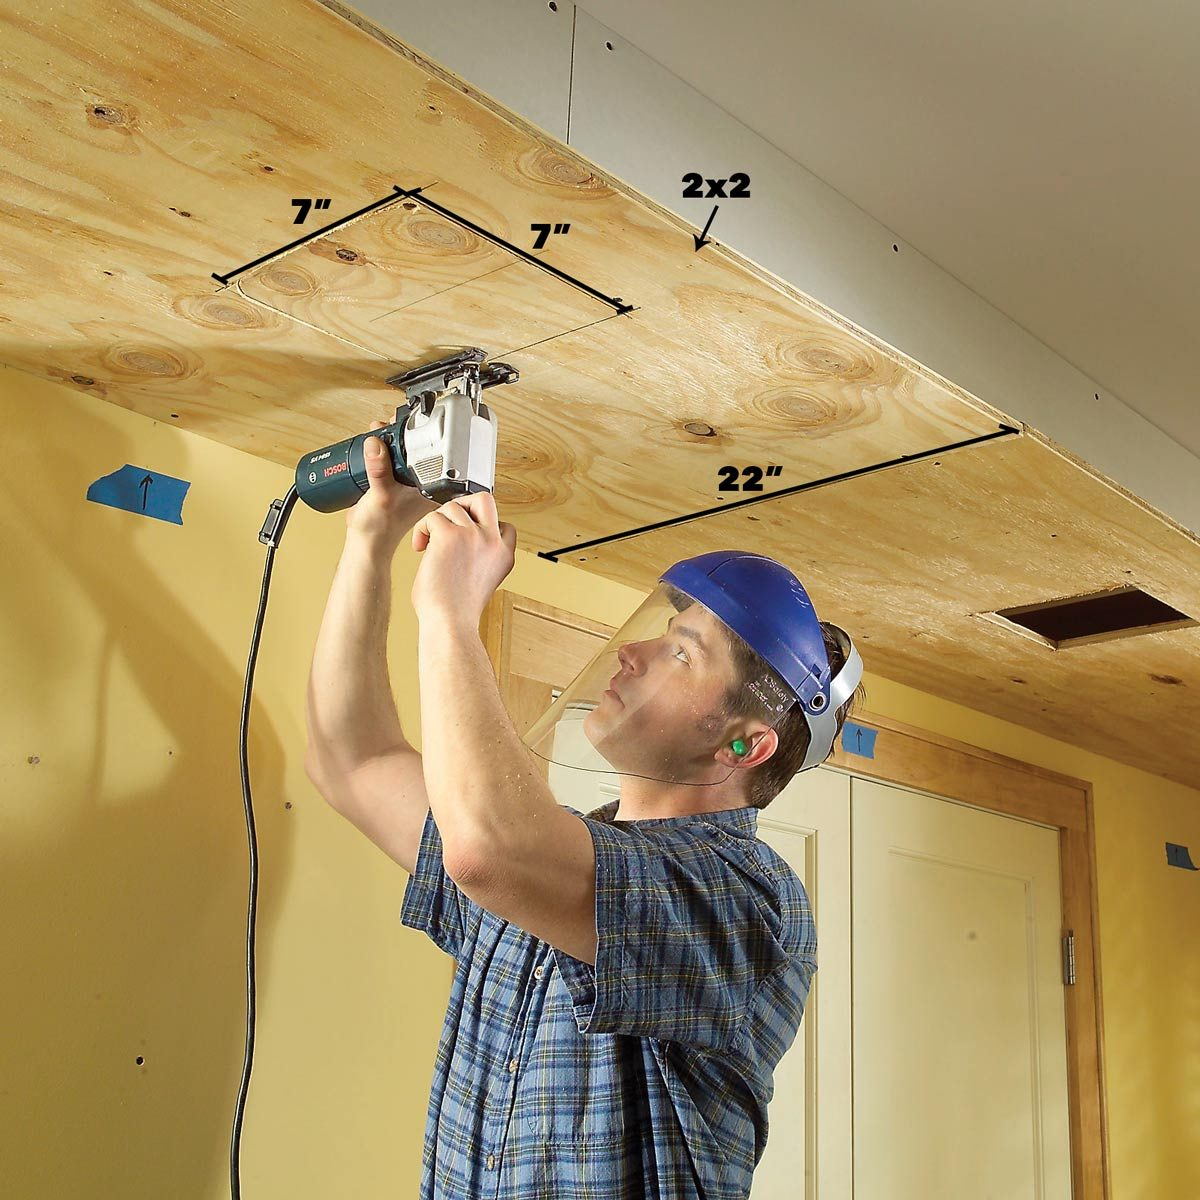 How To Build A Soffit Box With Recessed Lighting The Family Handyman